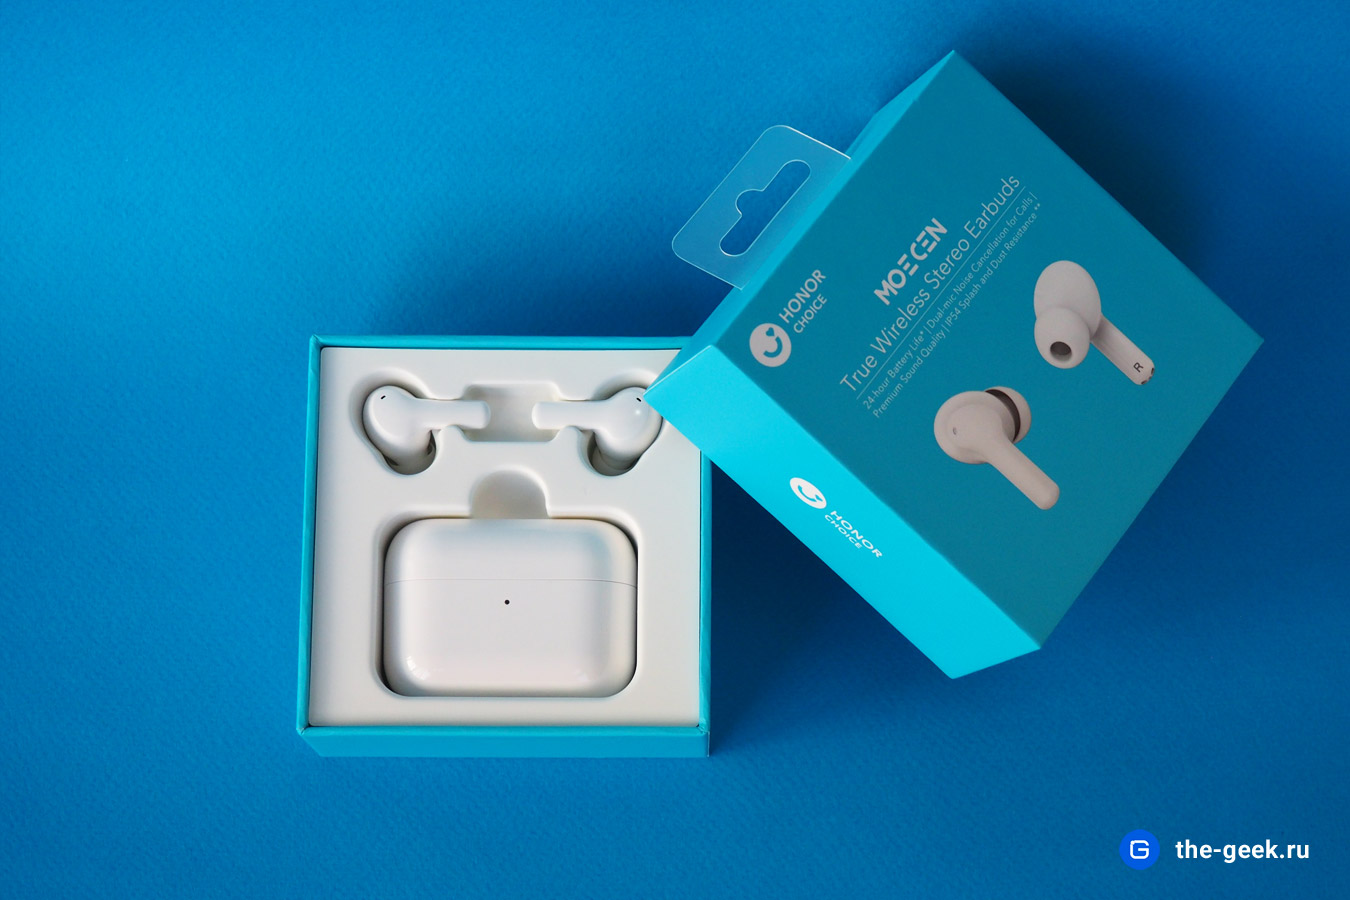 Honor True Wireless Stereo Earbuds 6